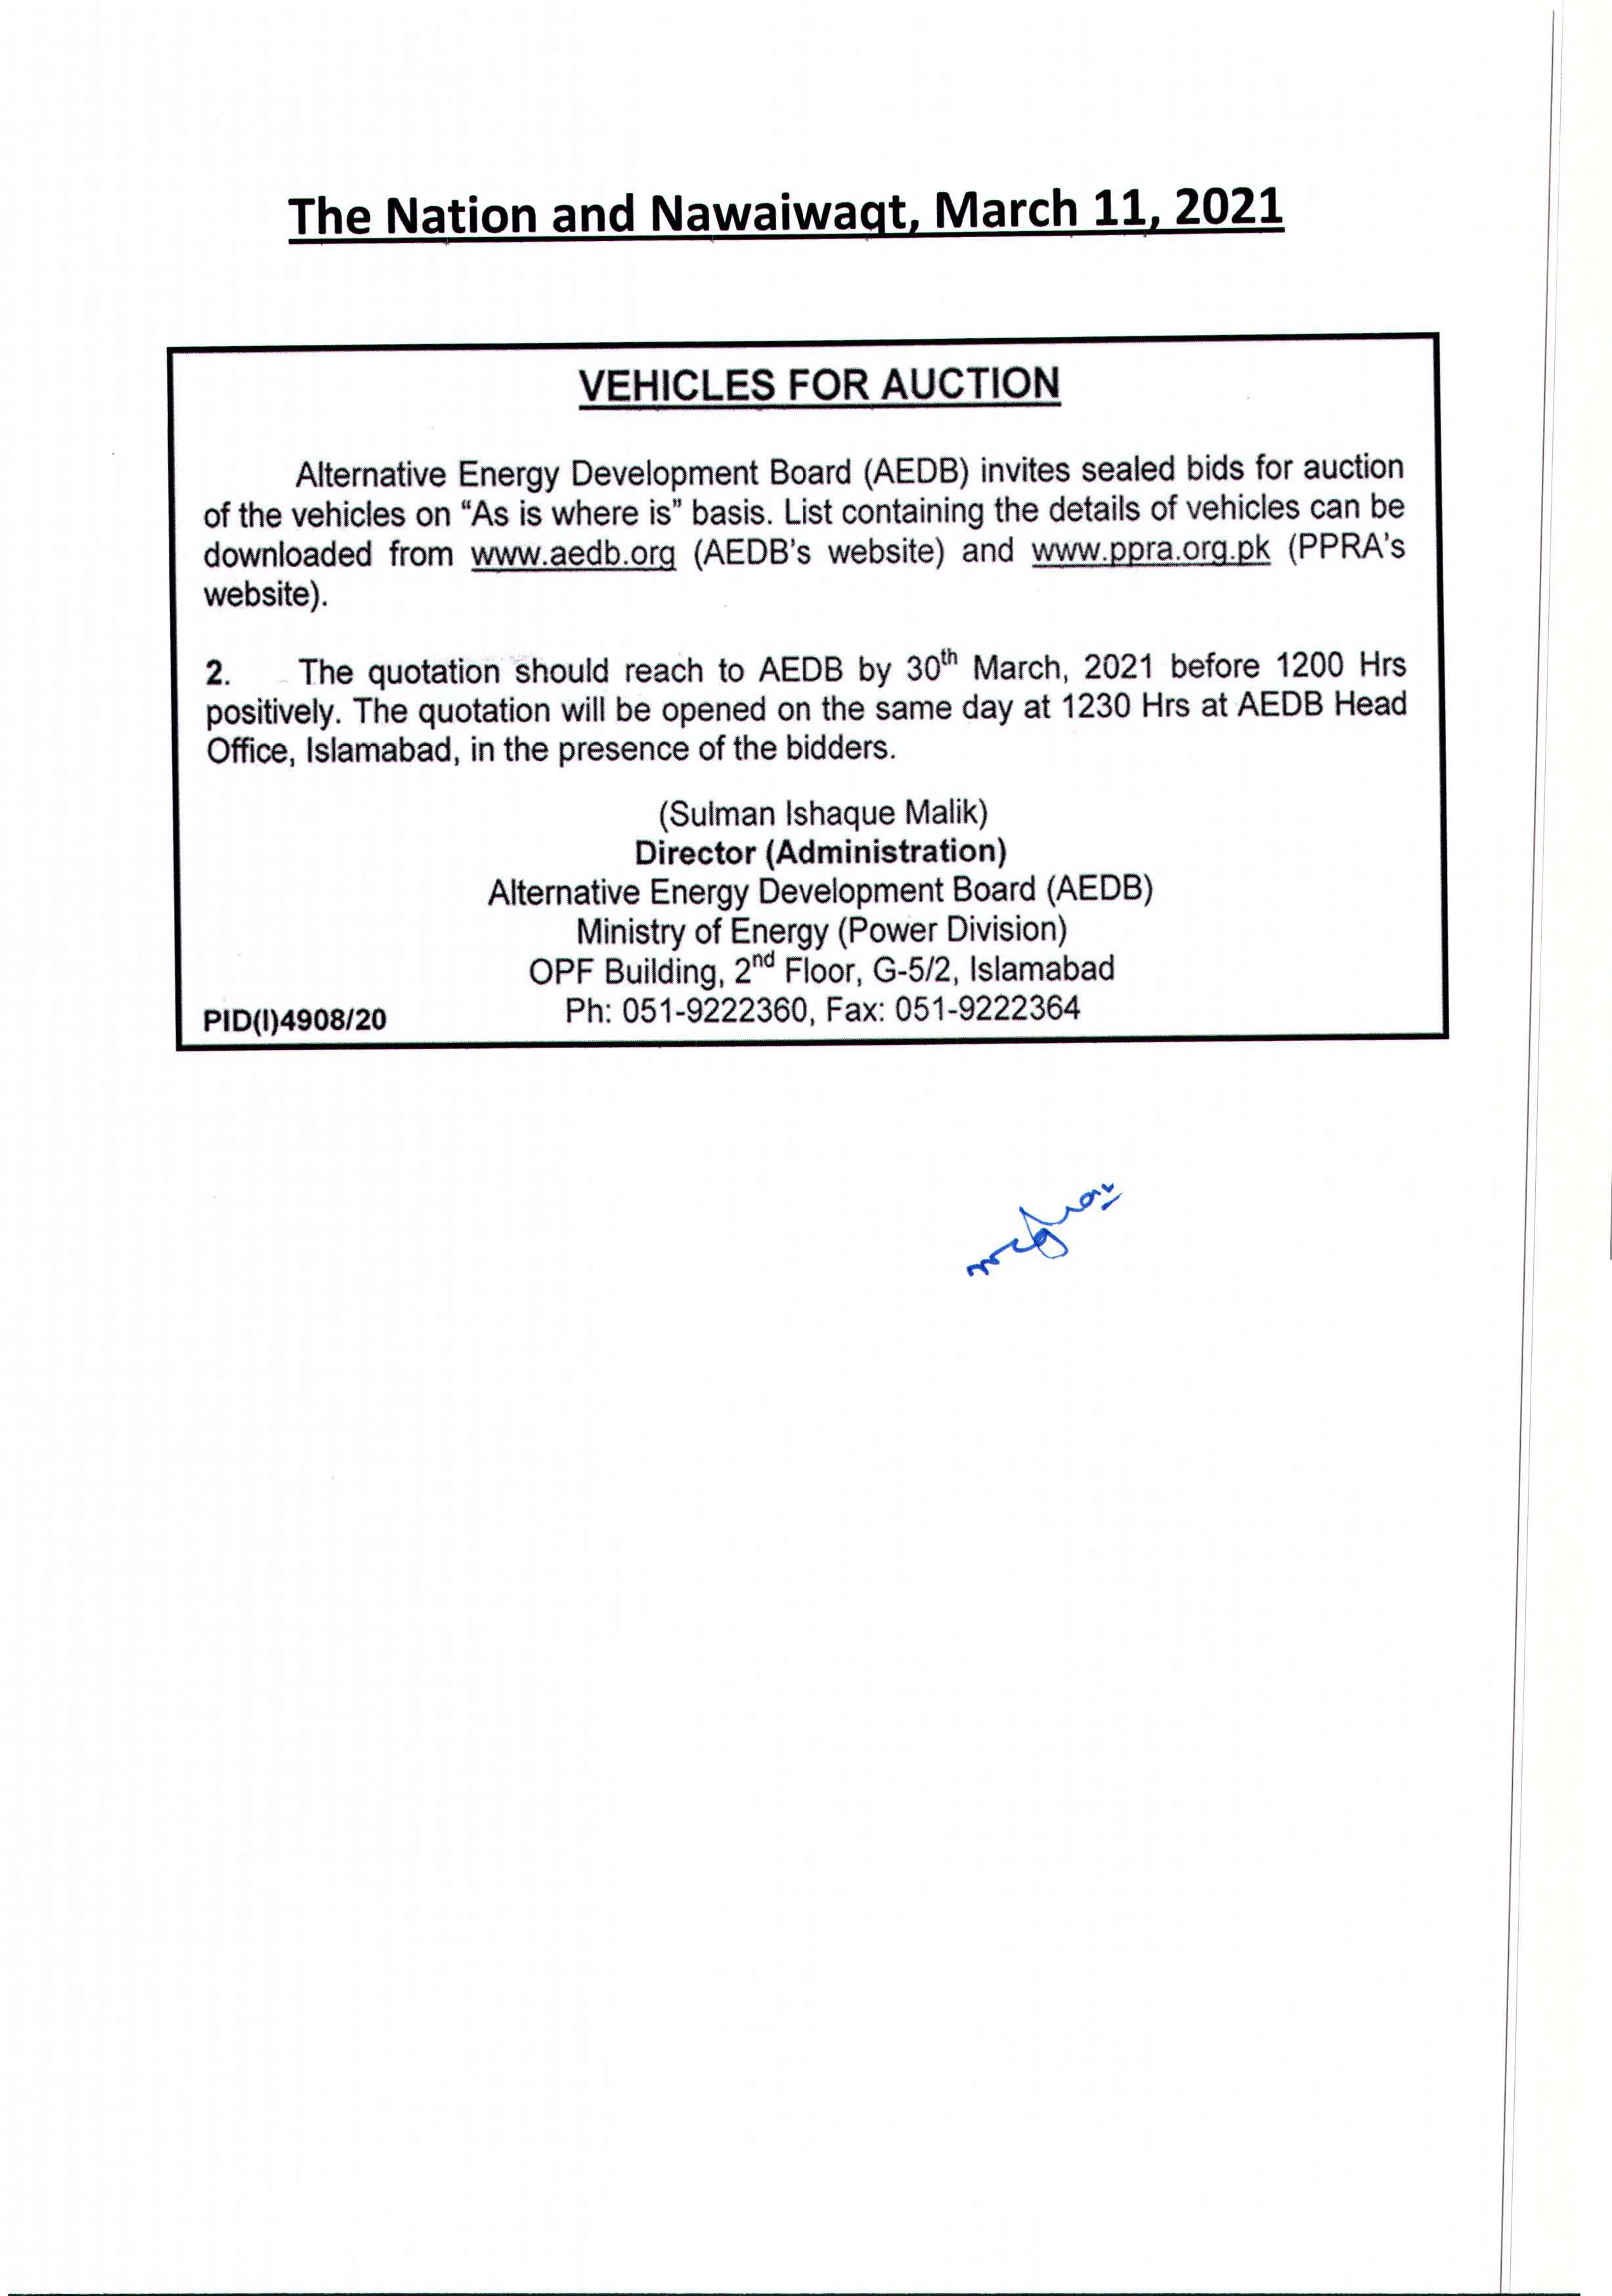 Vehicle for Auction Page 1